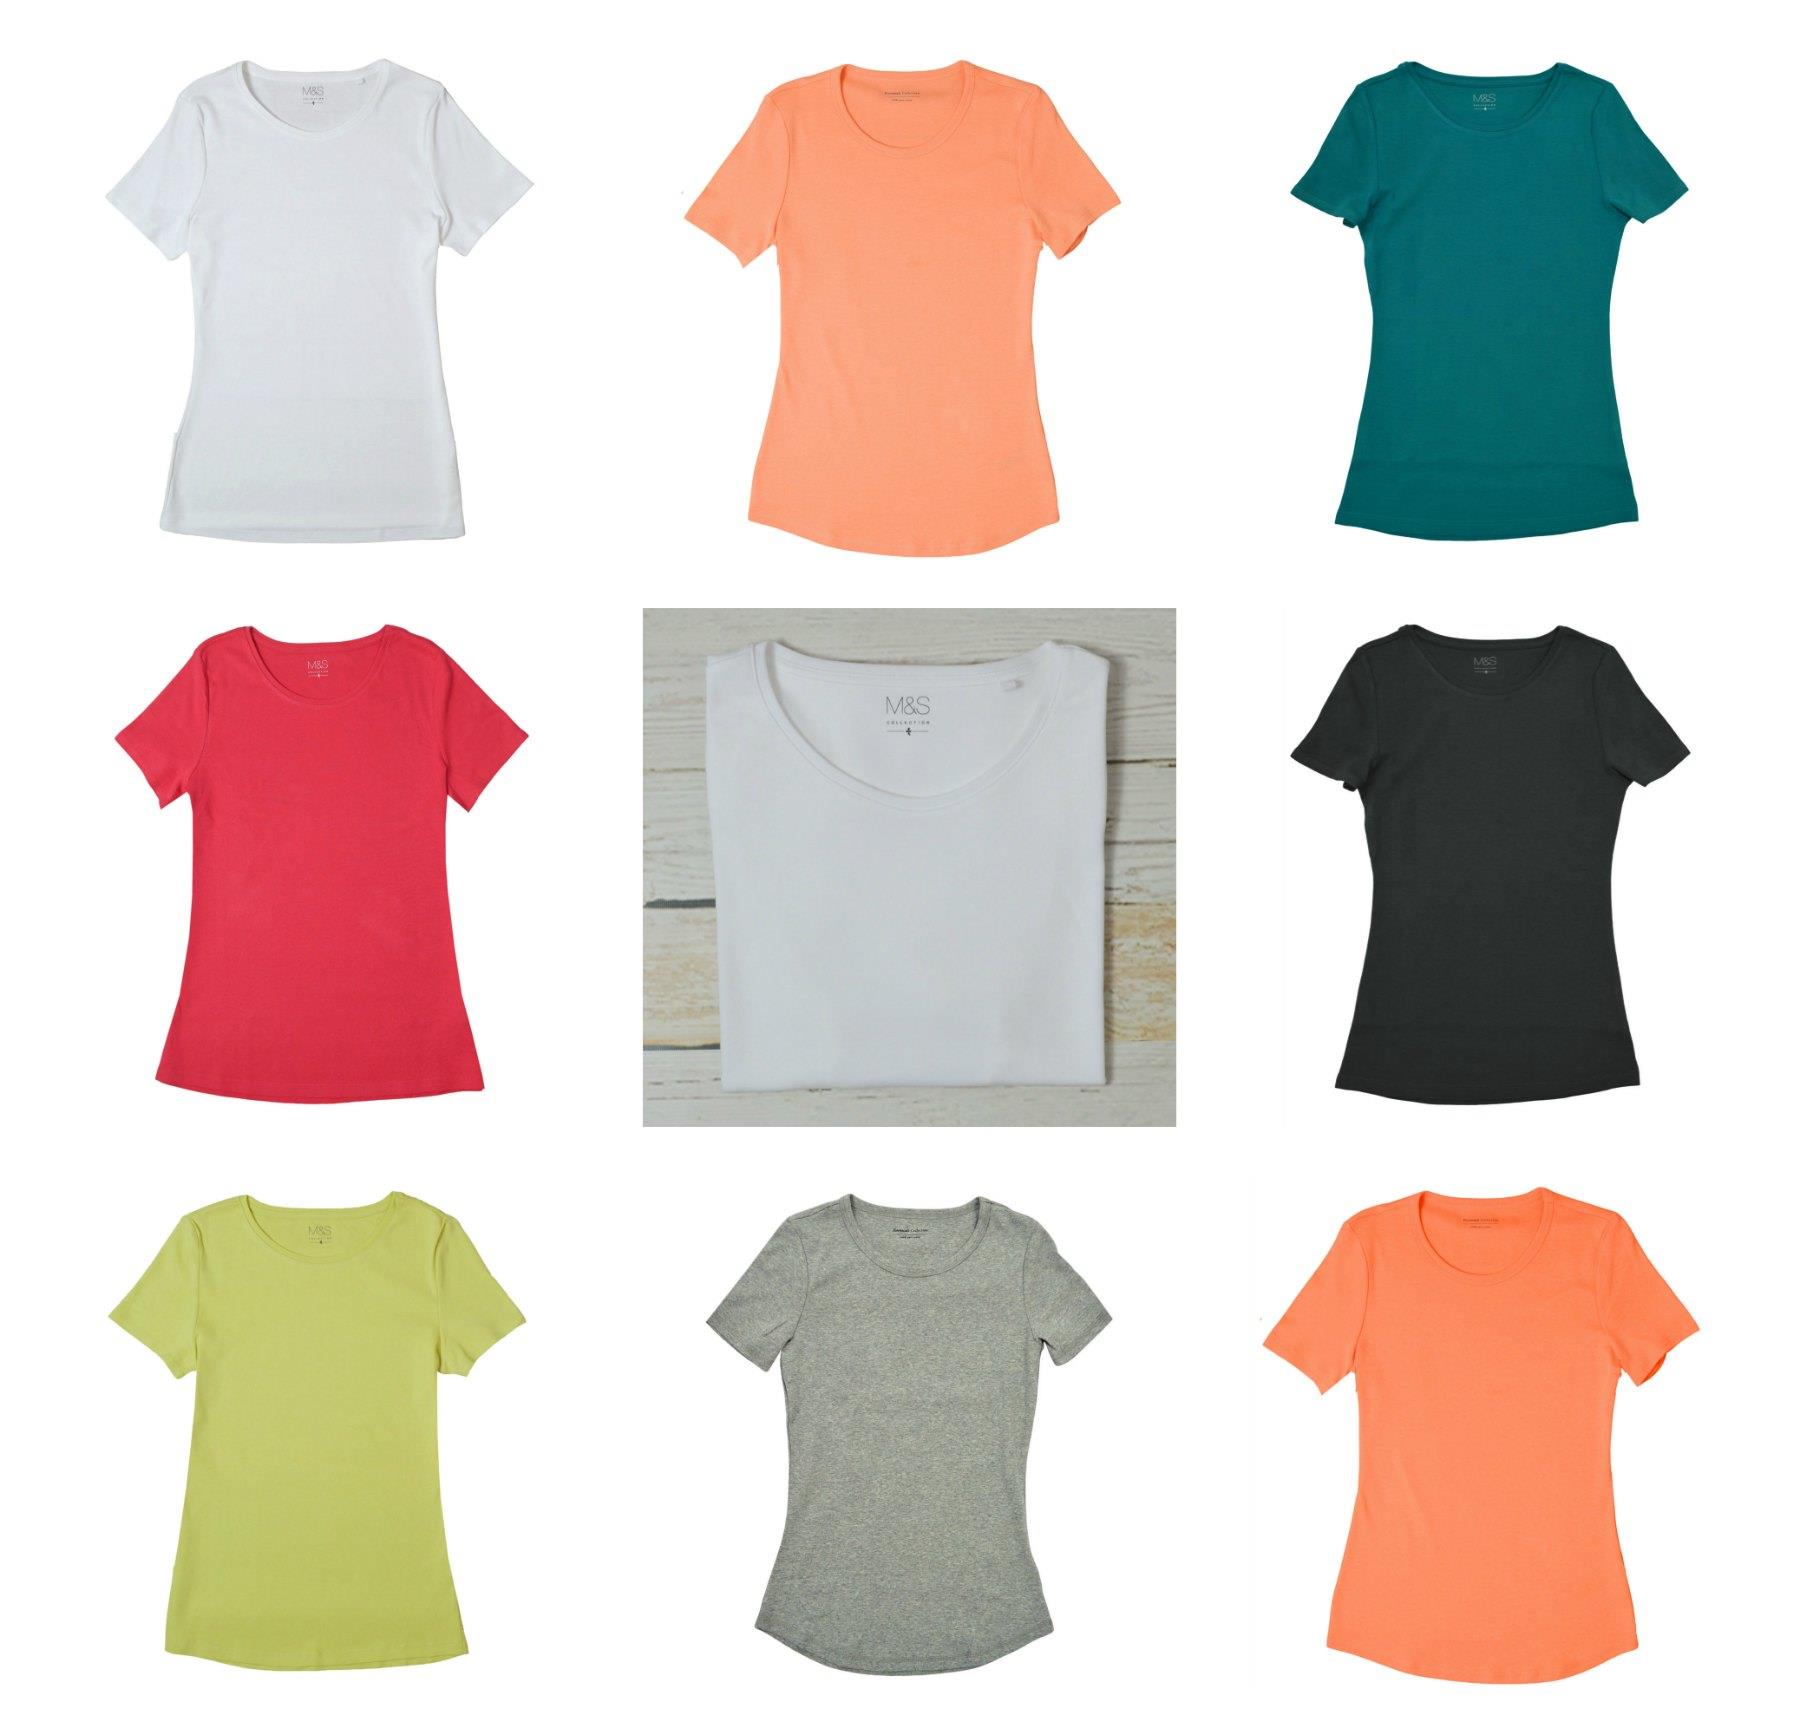 LADIES EX M/&S LONG SLEEVE COTTON TOPS T SHIRTS £7 2 OR MORE 15/% OFF FREE P/&P